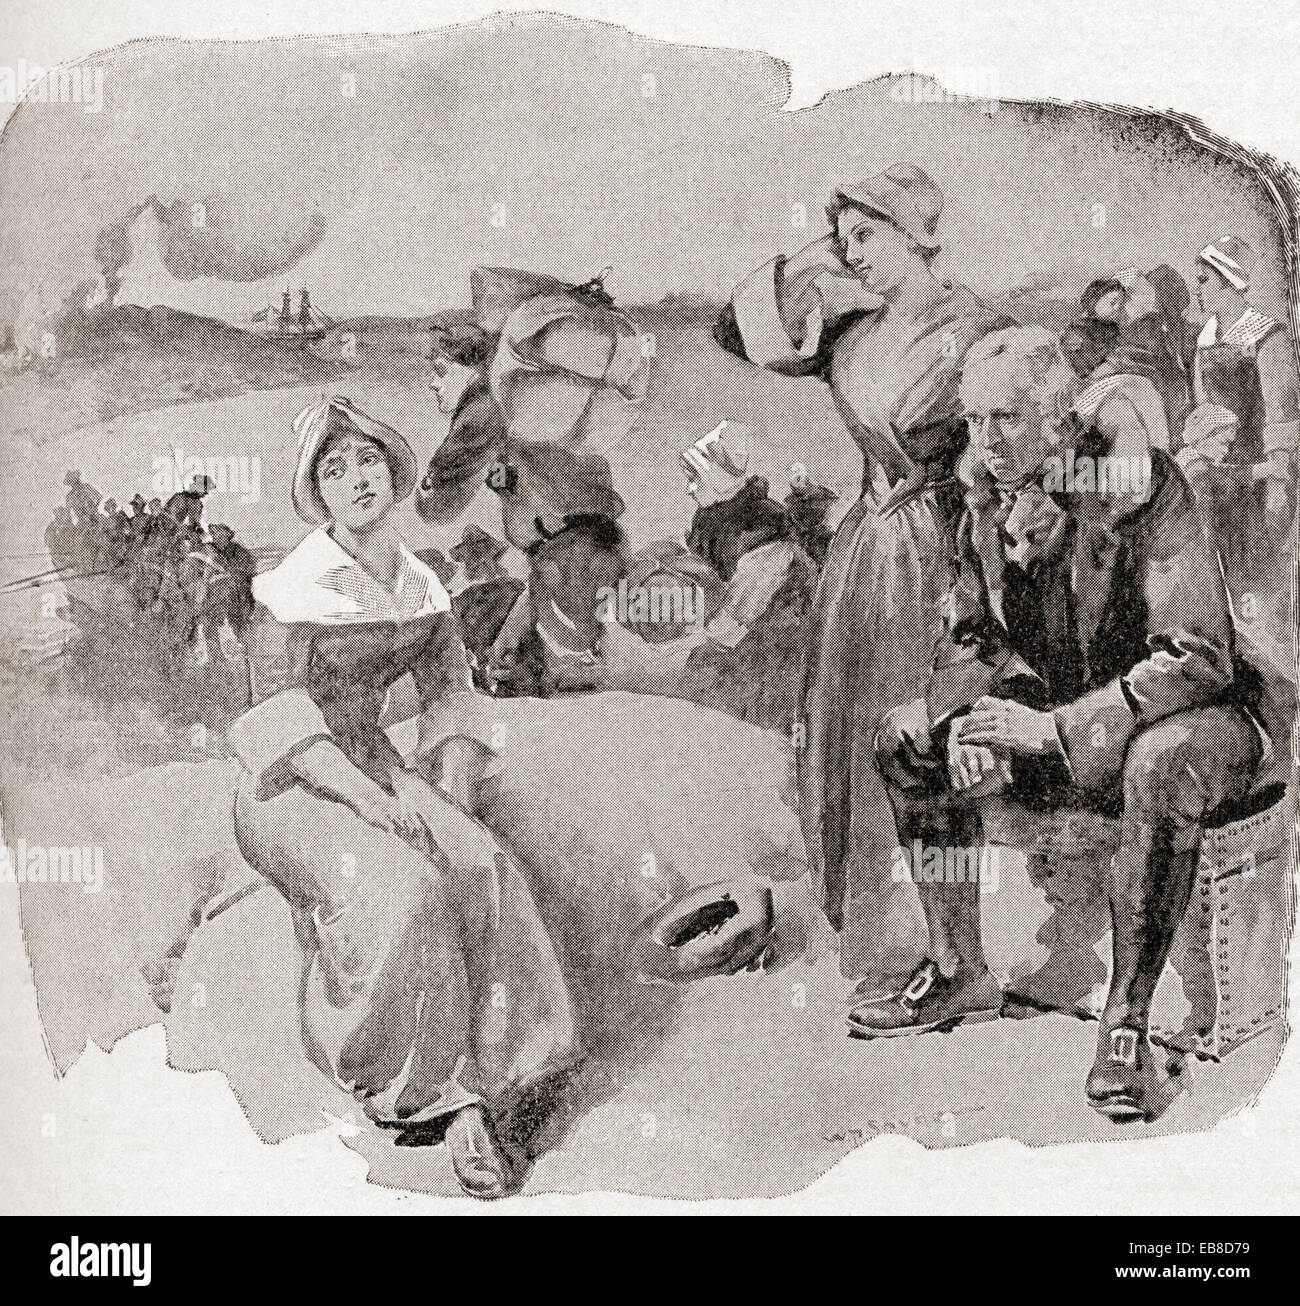 The Expulsion of the Acadians, aka the Great Upheaval, the Great Expulsion and Le Grand Dérangement. - Stock Image